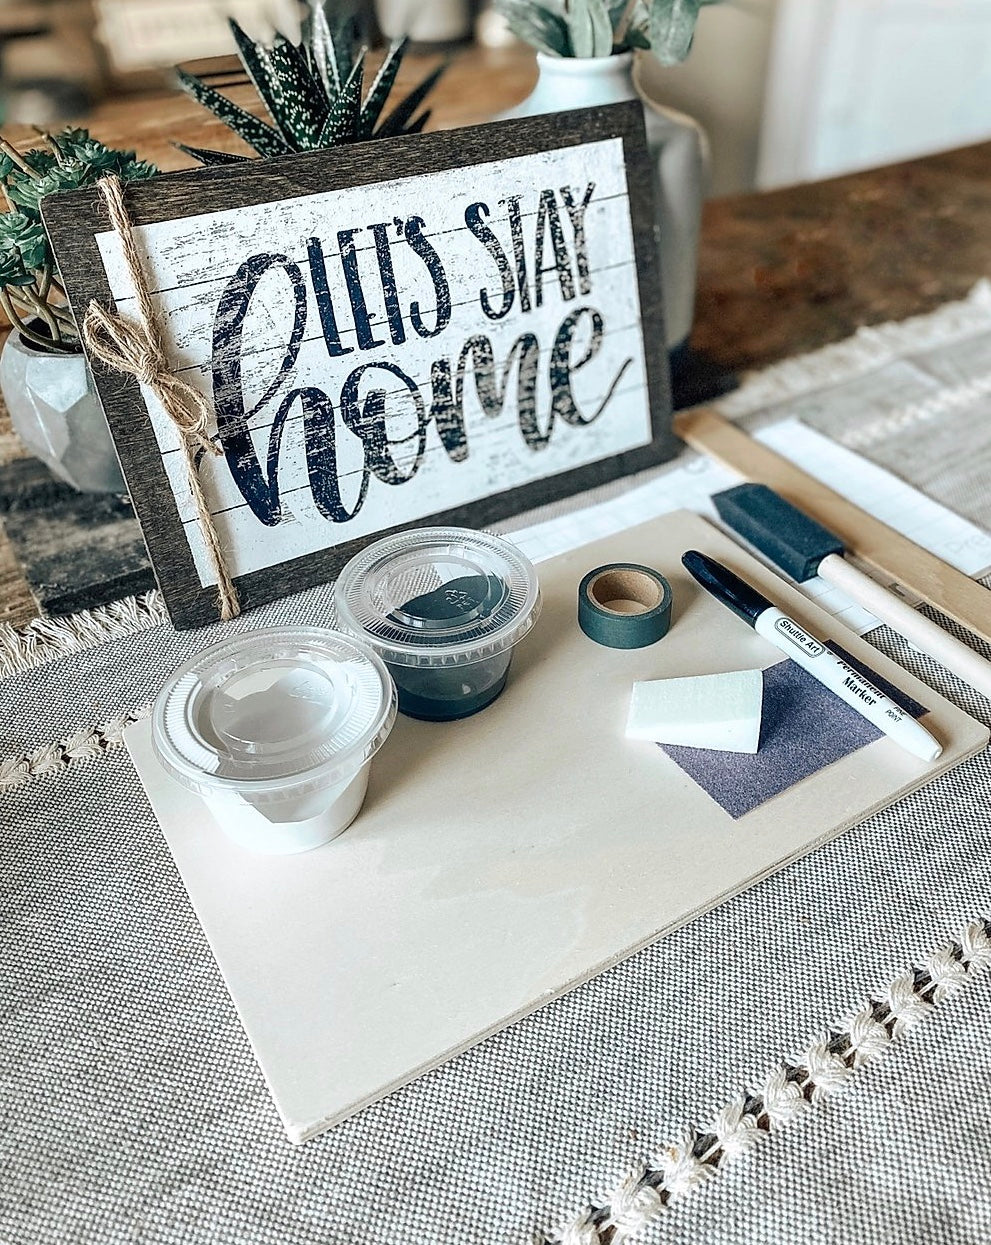 PRIVATE PARTY - DIY at Home Wooden Sign Kit